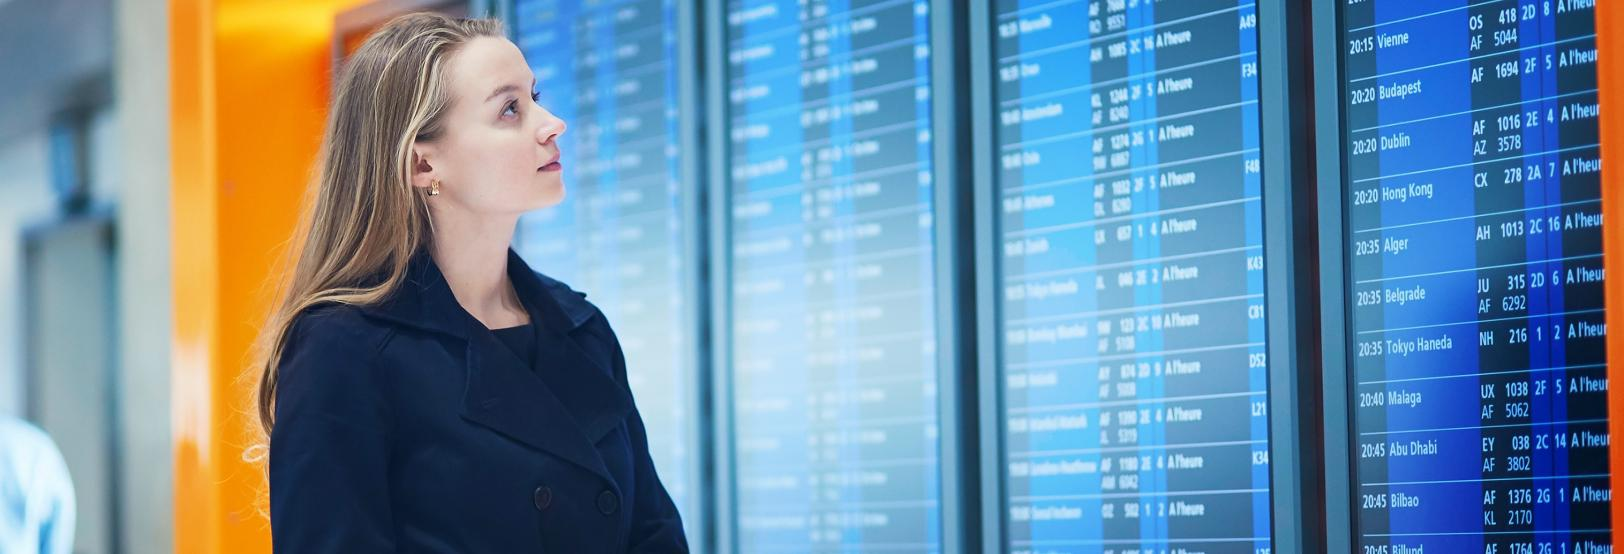 woman looking at transportation schedule screen